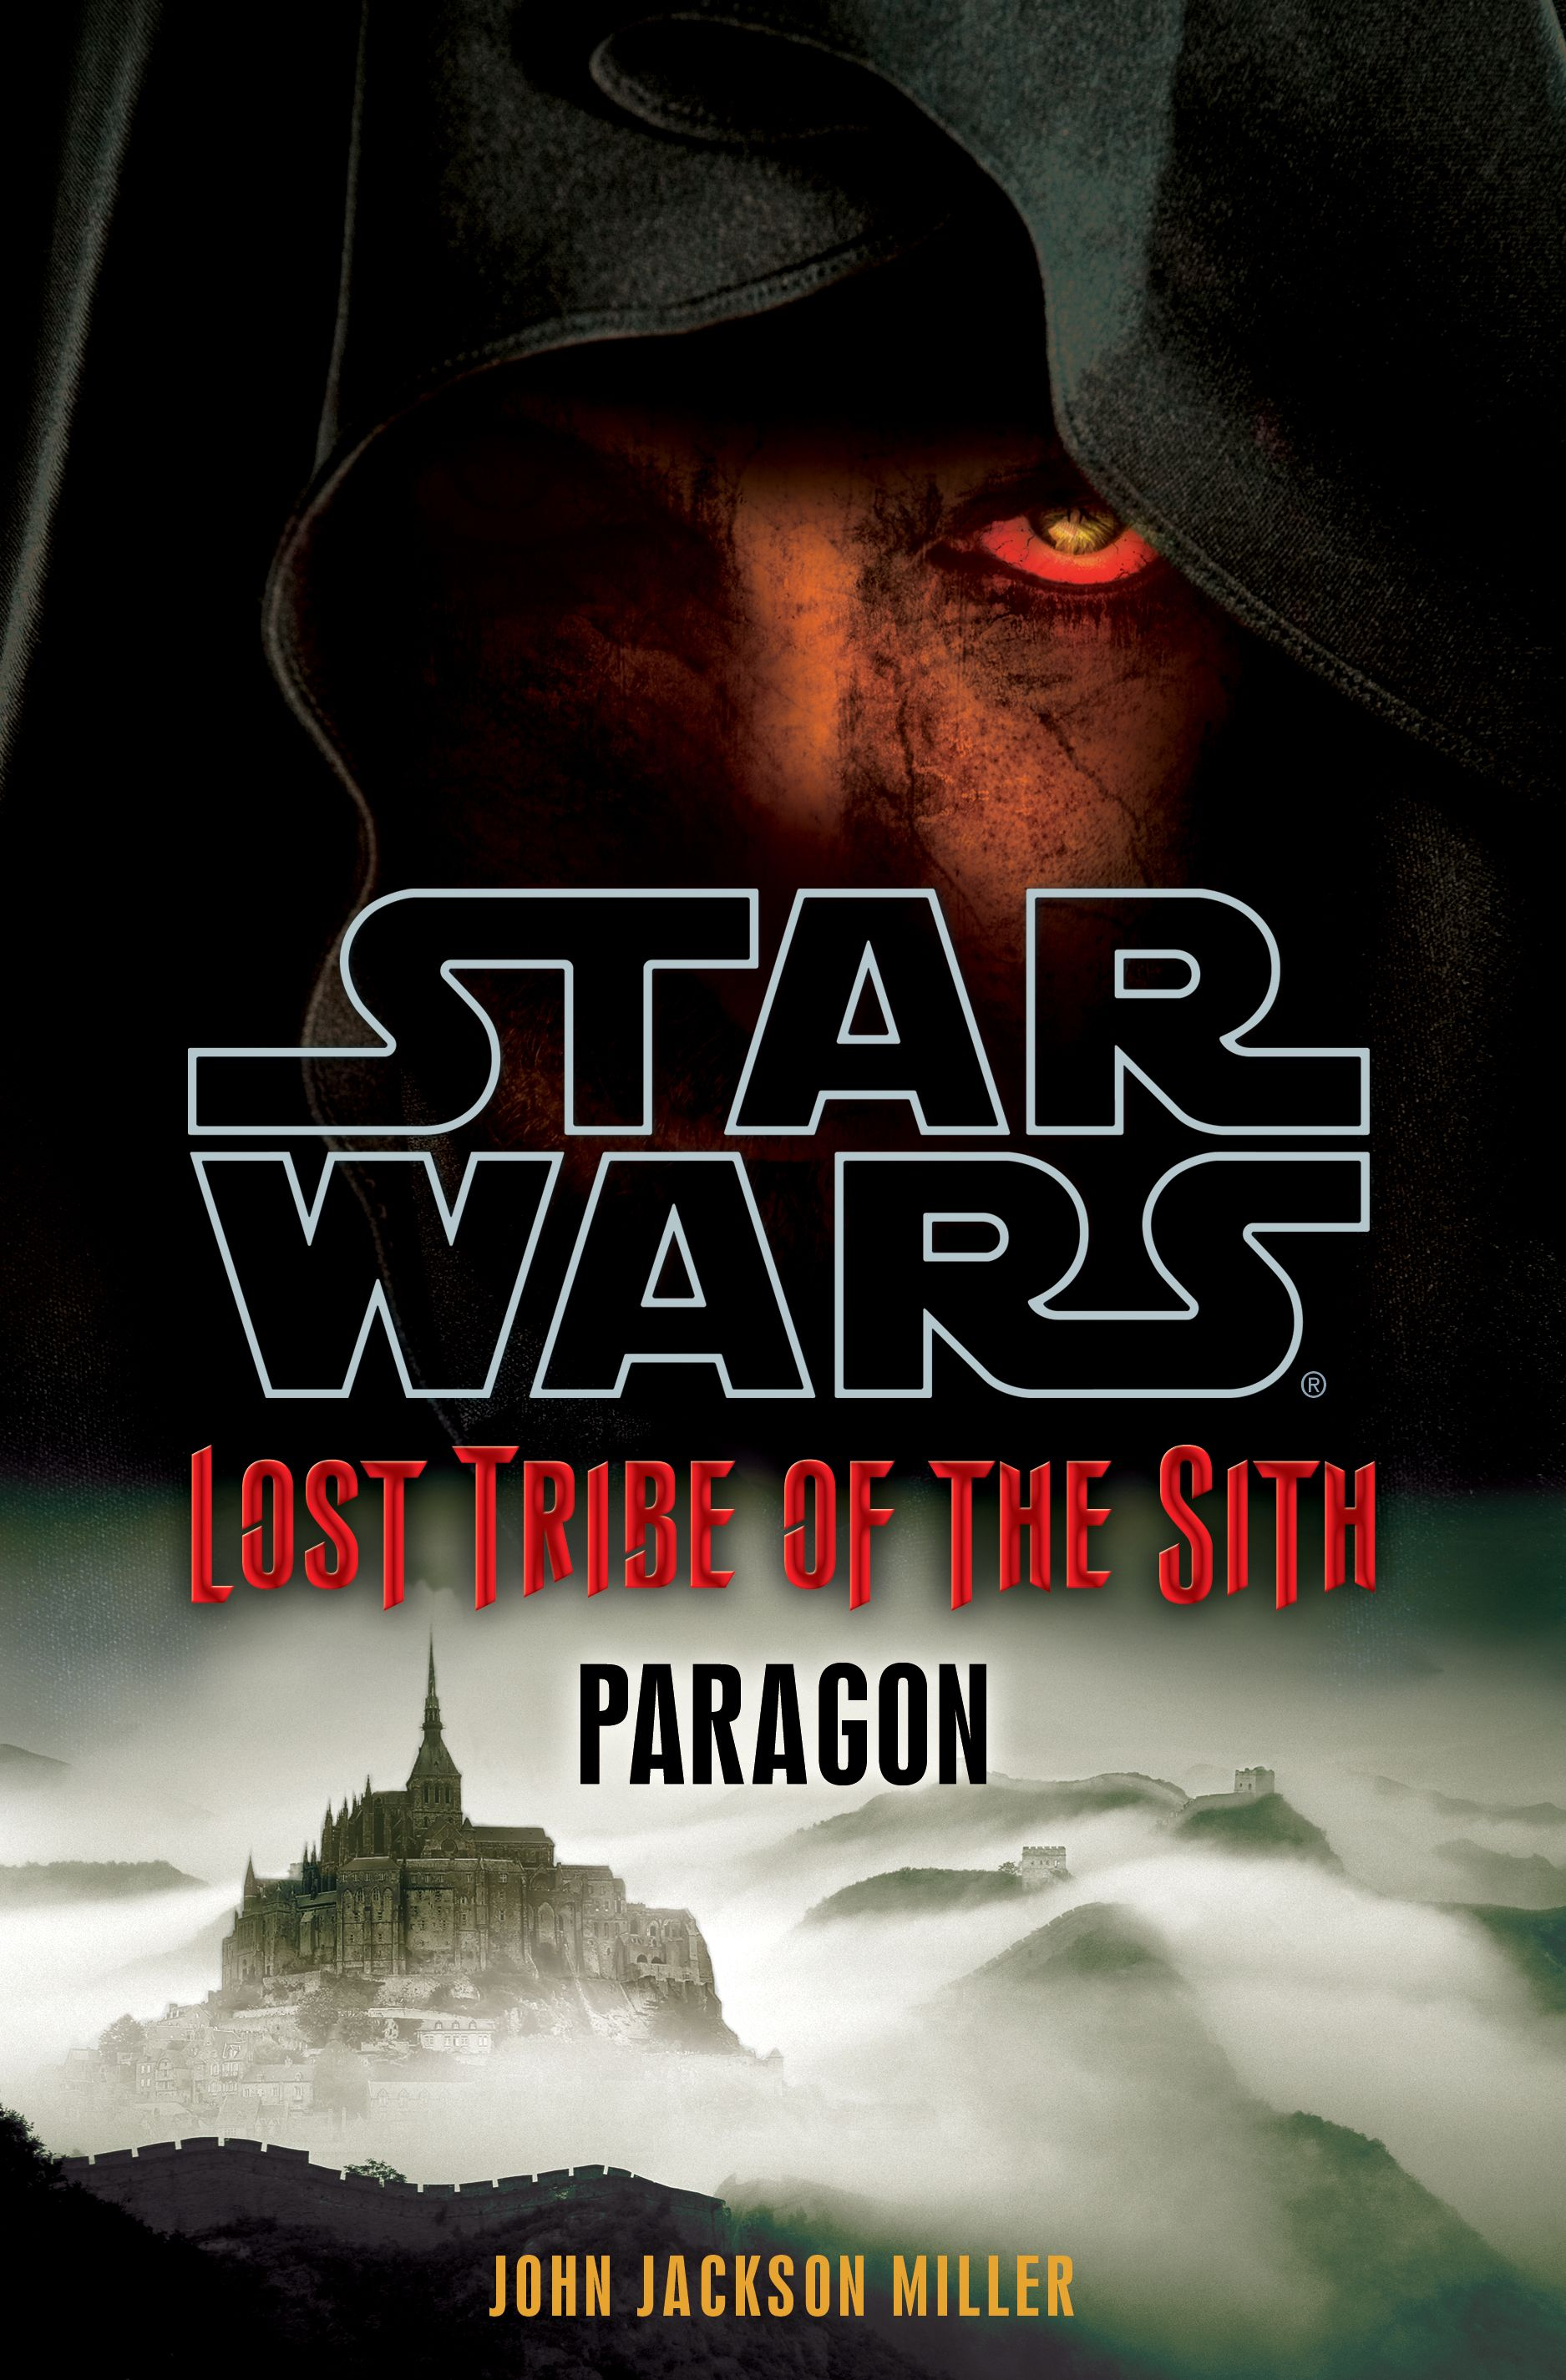 Star Wars Lost Tribe of the Sith: Paragon